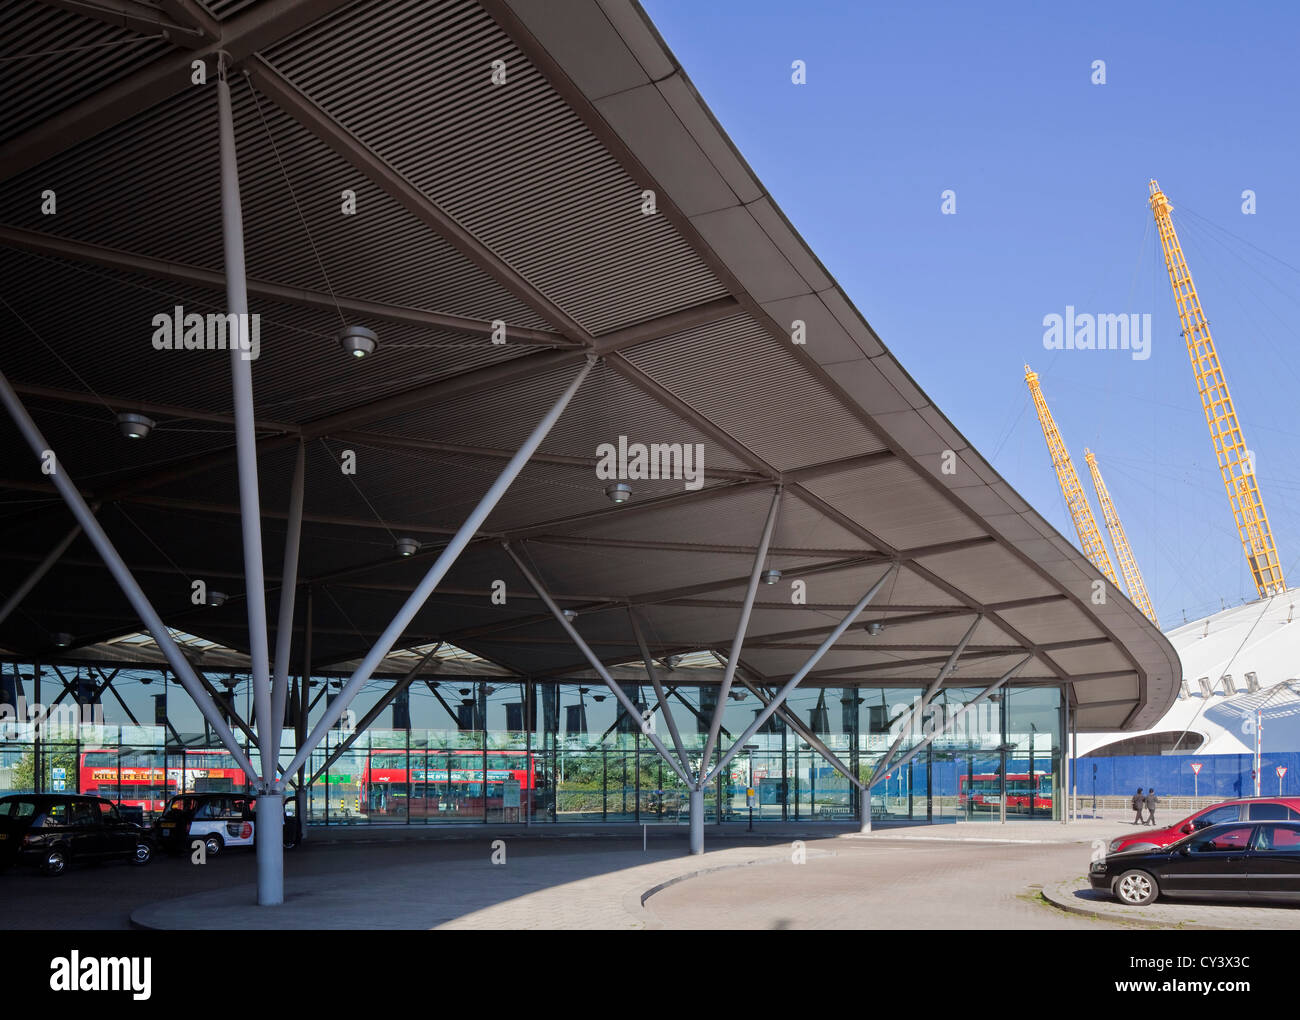 North Greenwich Transport Interchange London United Kingdom Architect Foster Partners 1999 Exterior View Of Roof Canopy